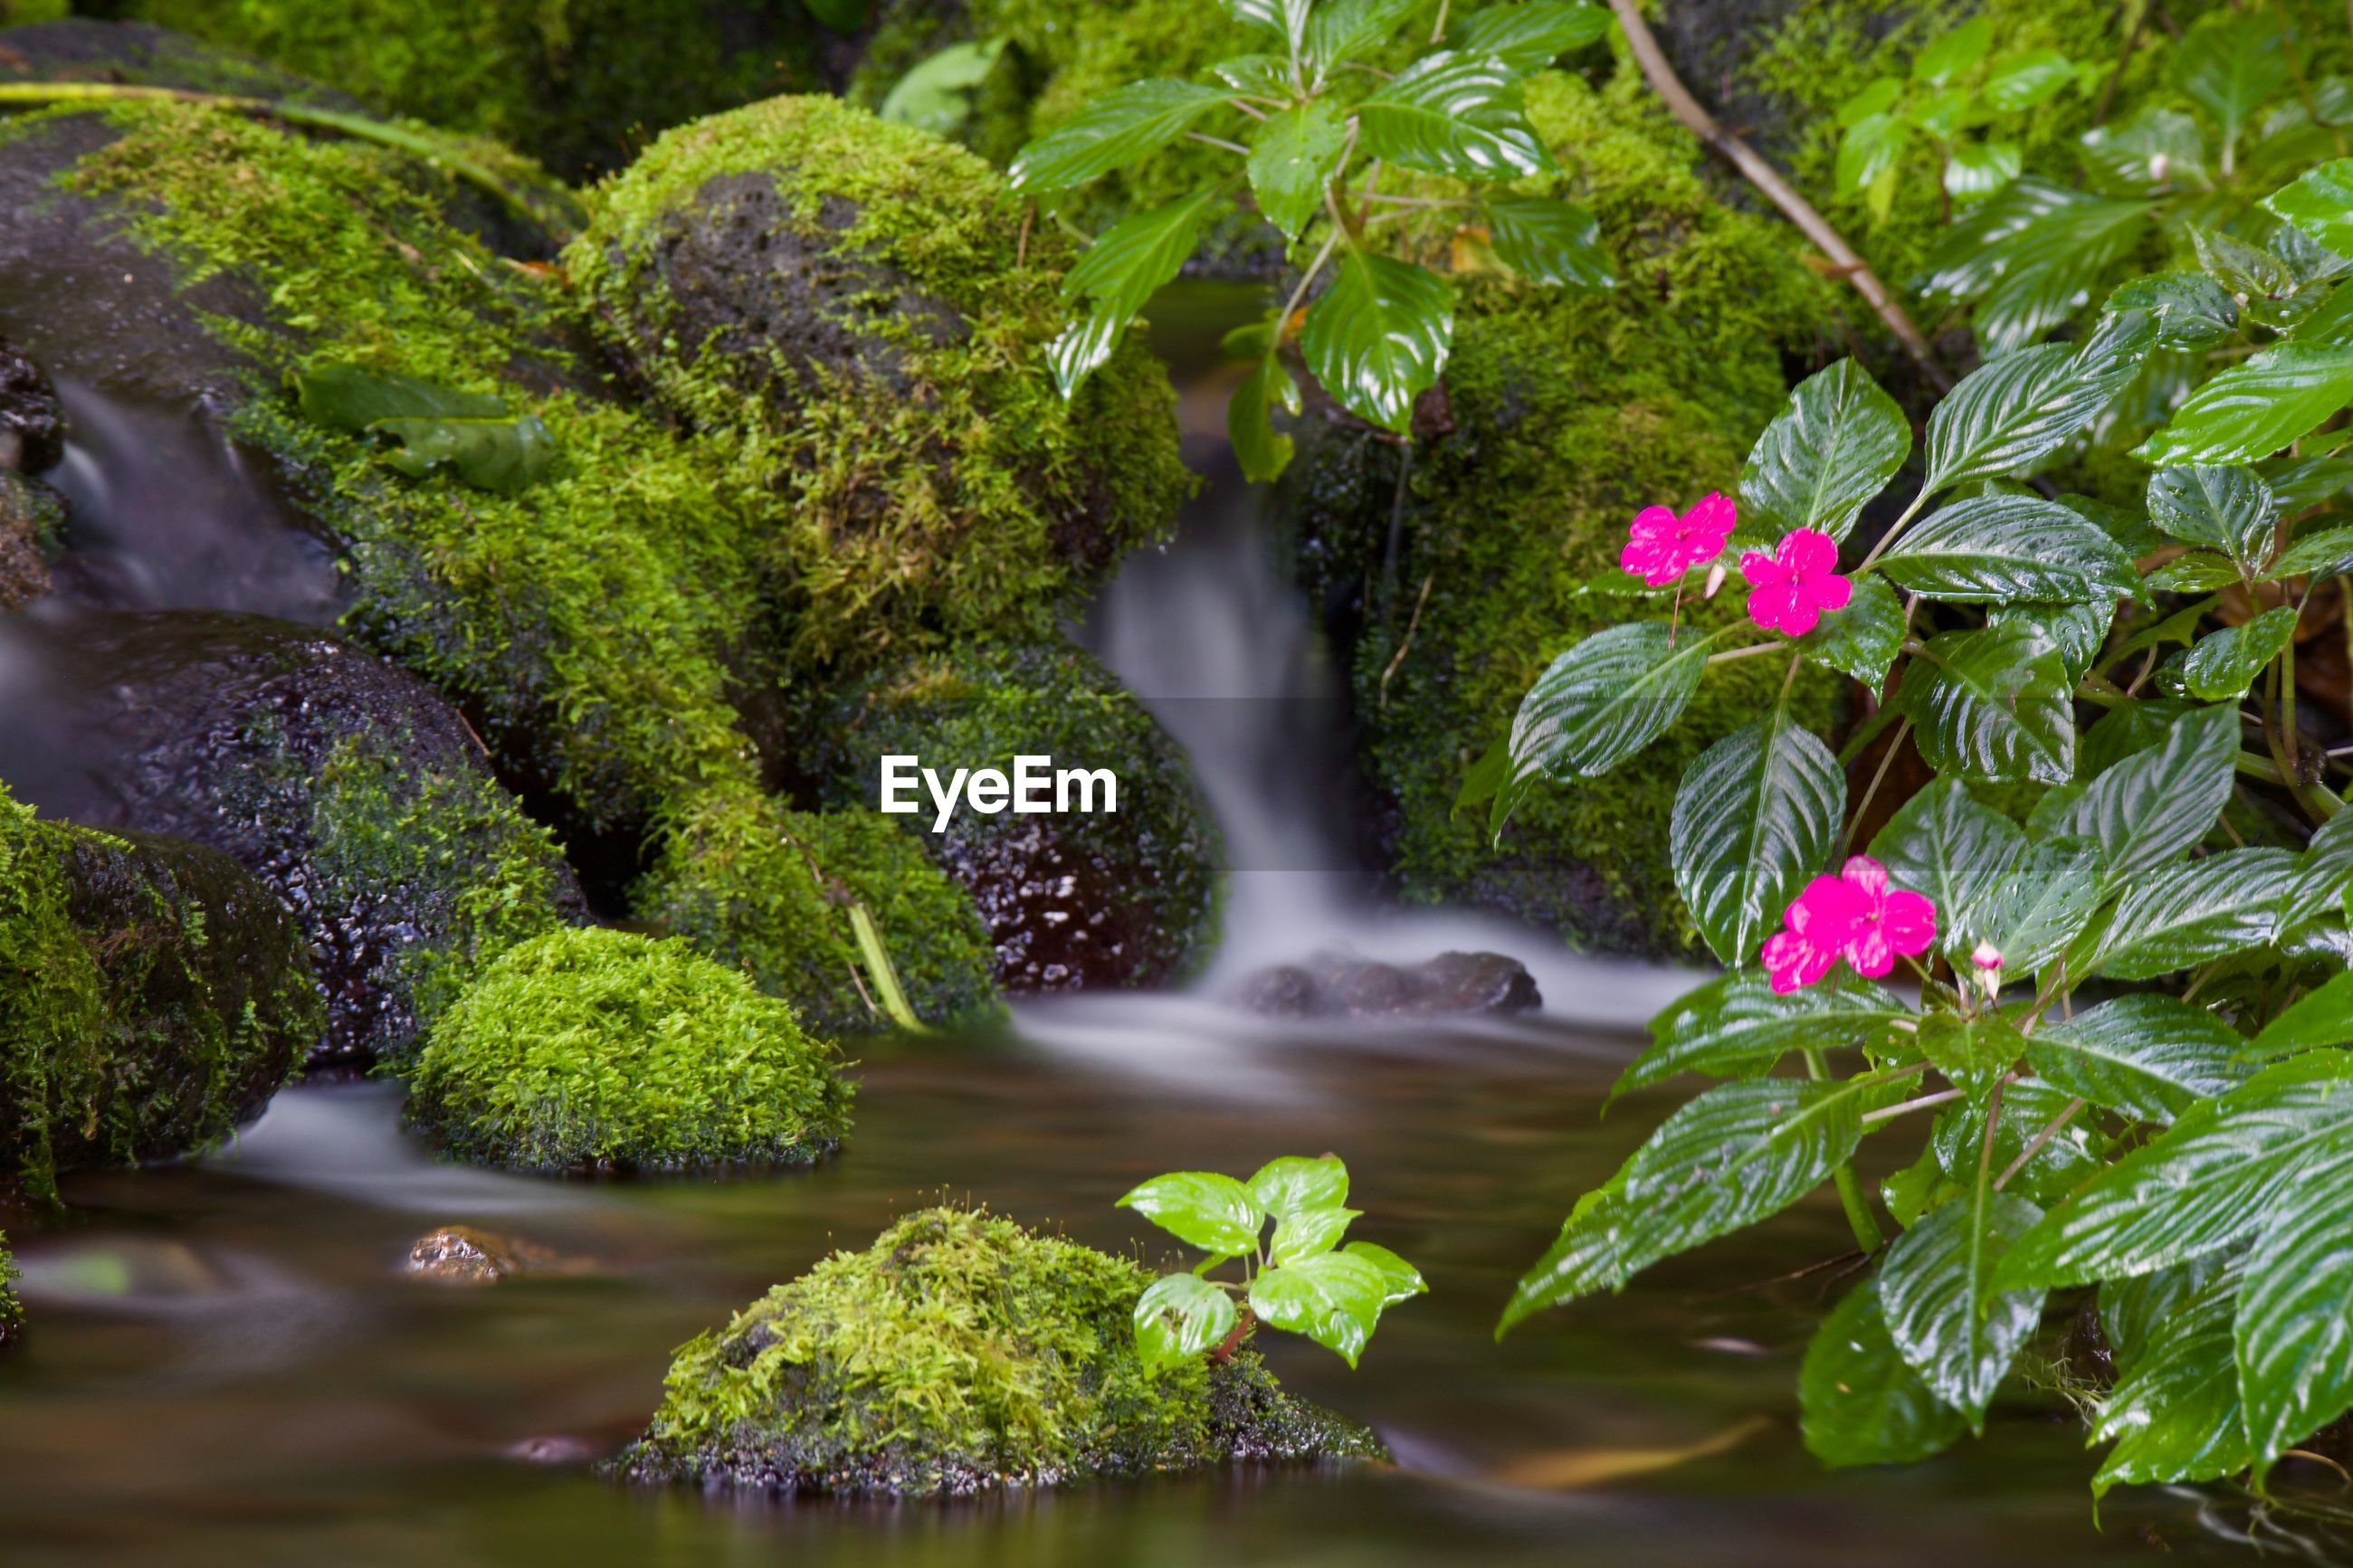 SCENIC VIEW OF WATER FLOWING AMIDST PLANTS